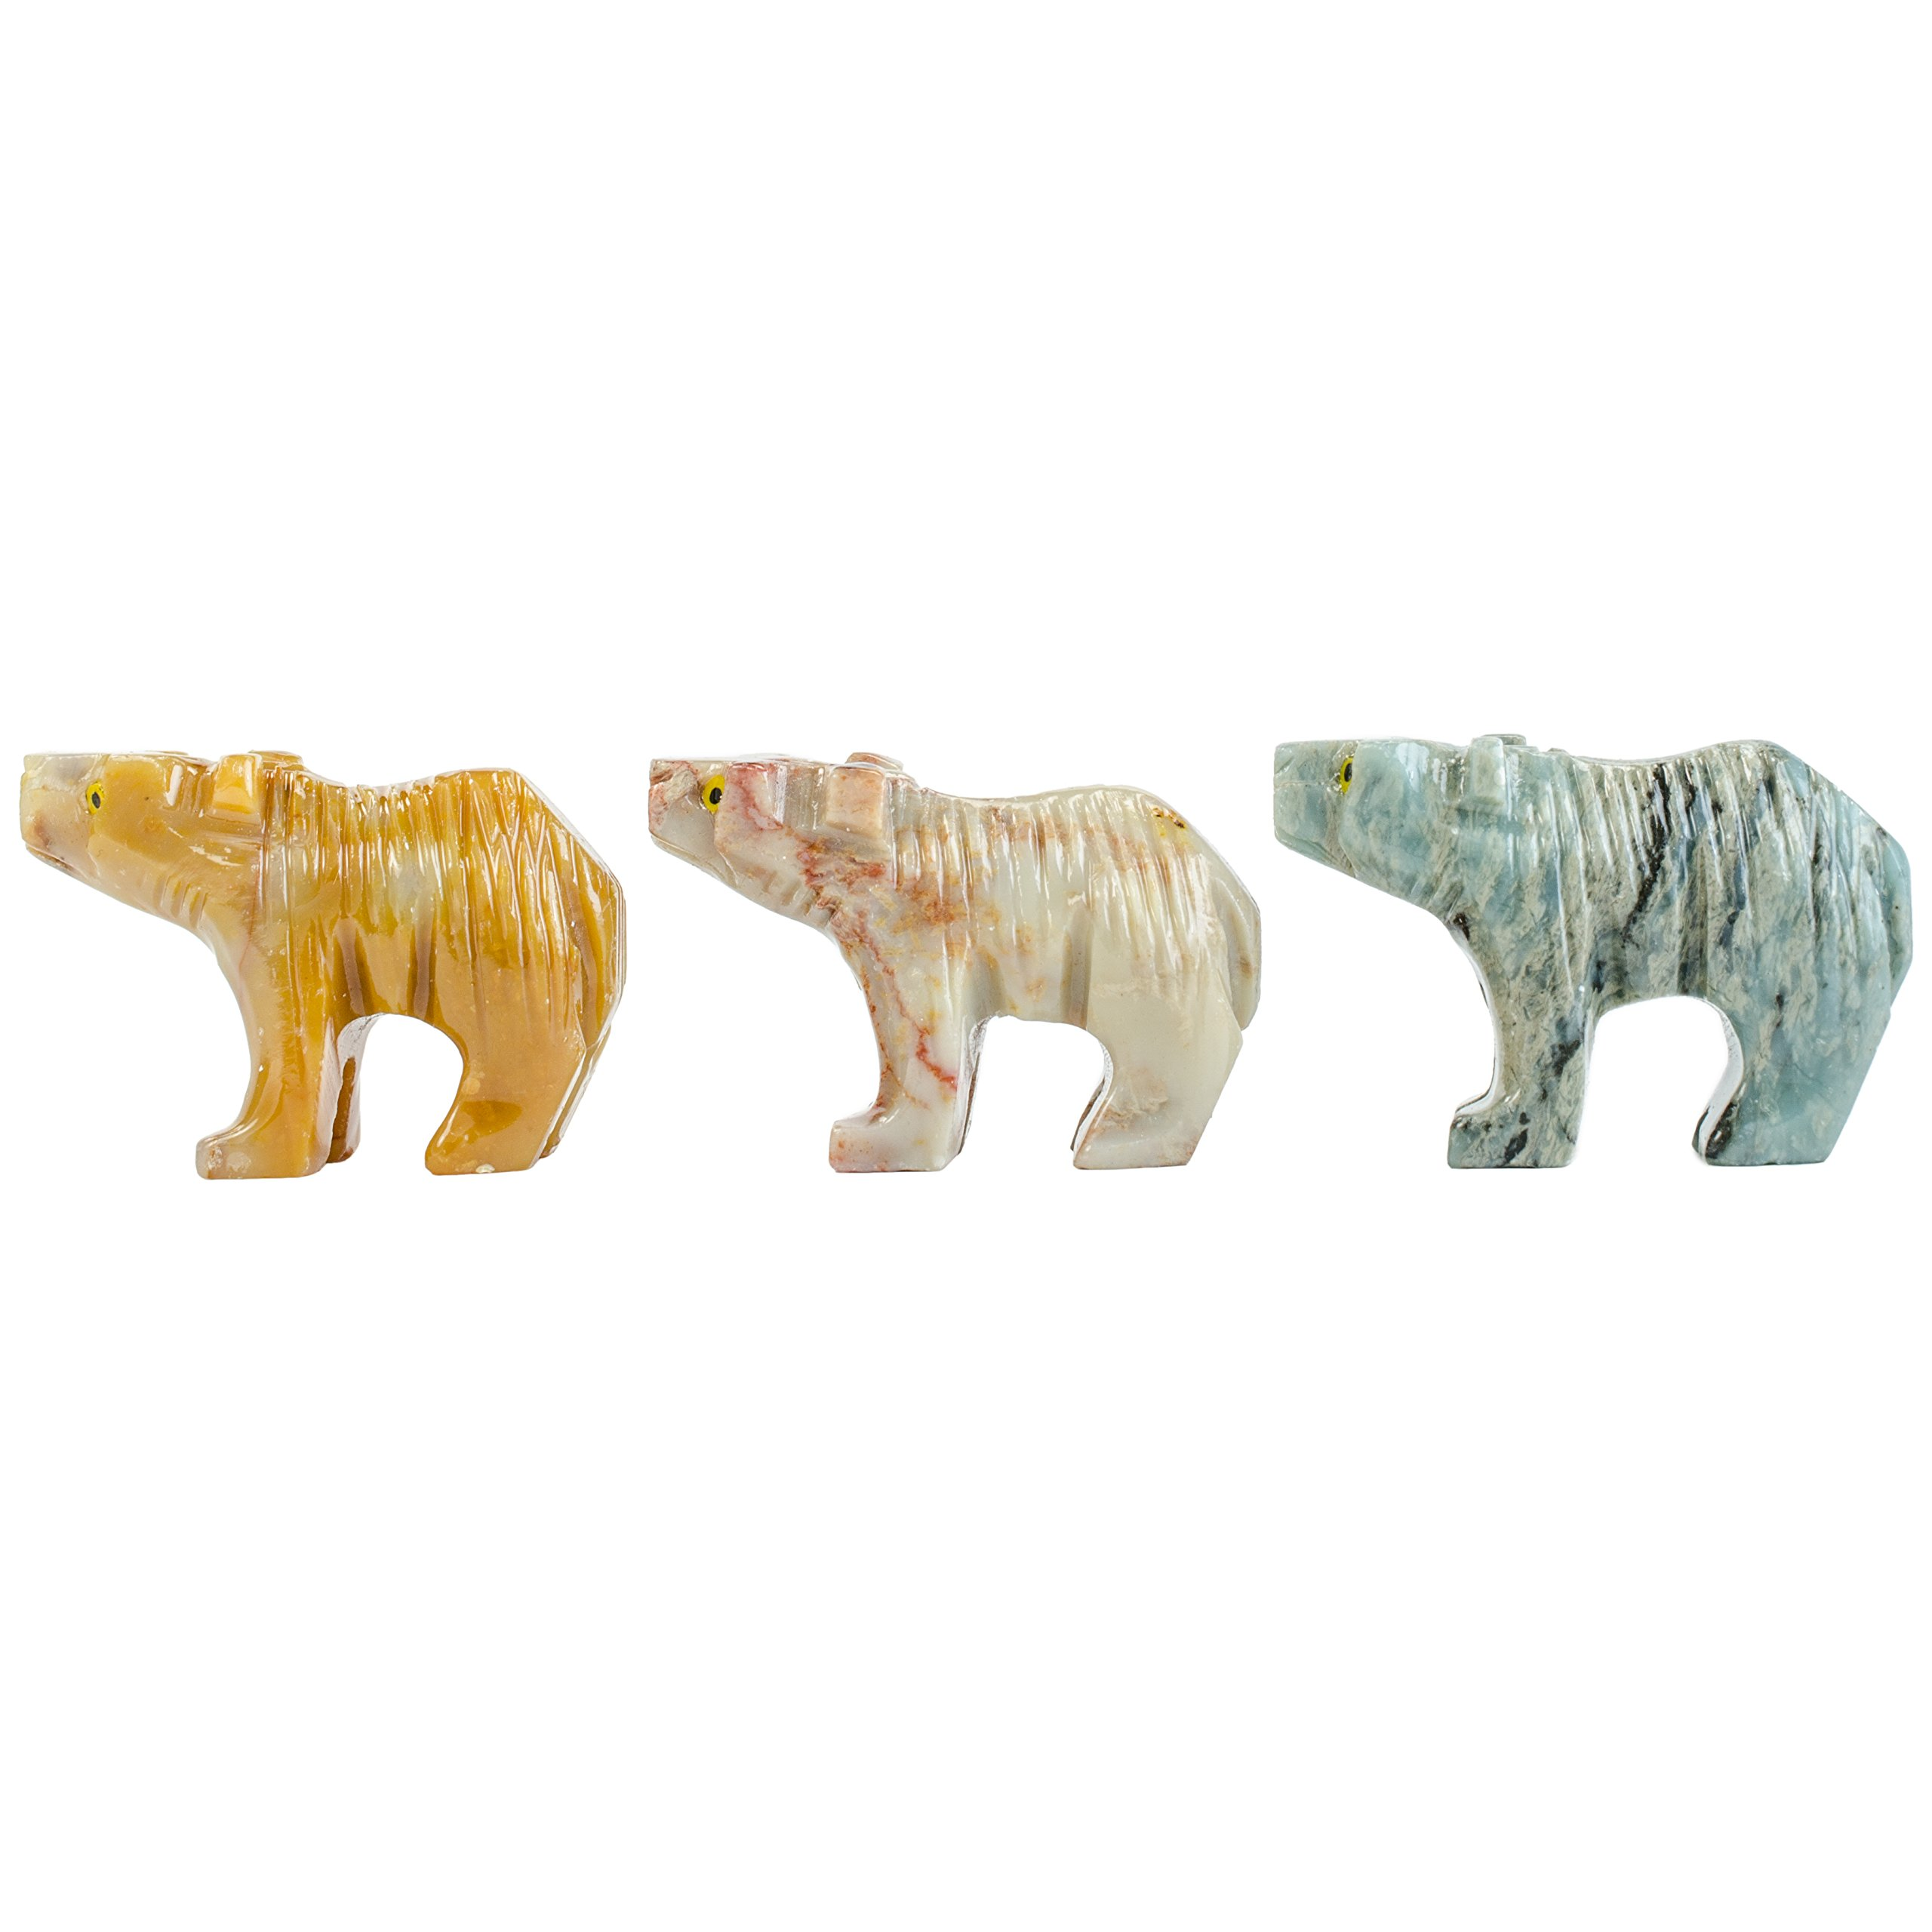 Digging Dolls : 10 pcs Artisan Bear Collectable Animal Figurine - Party Favors, Stocking Stuffers, Gifts, Collecting and More!